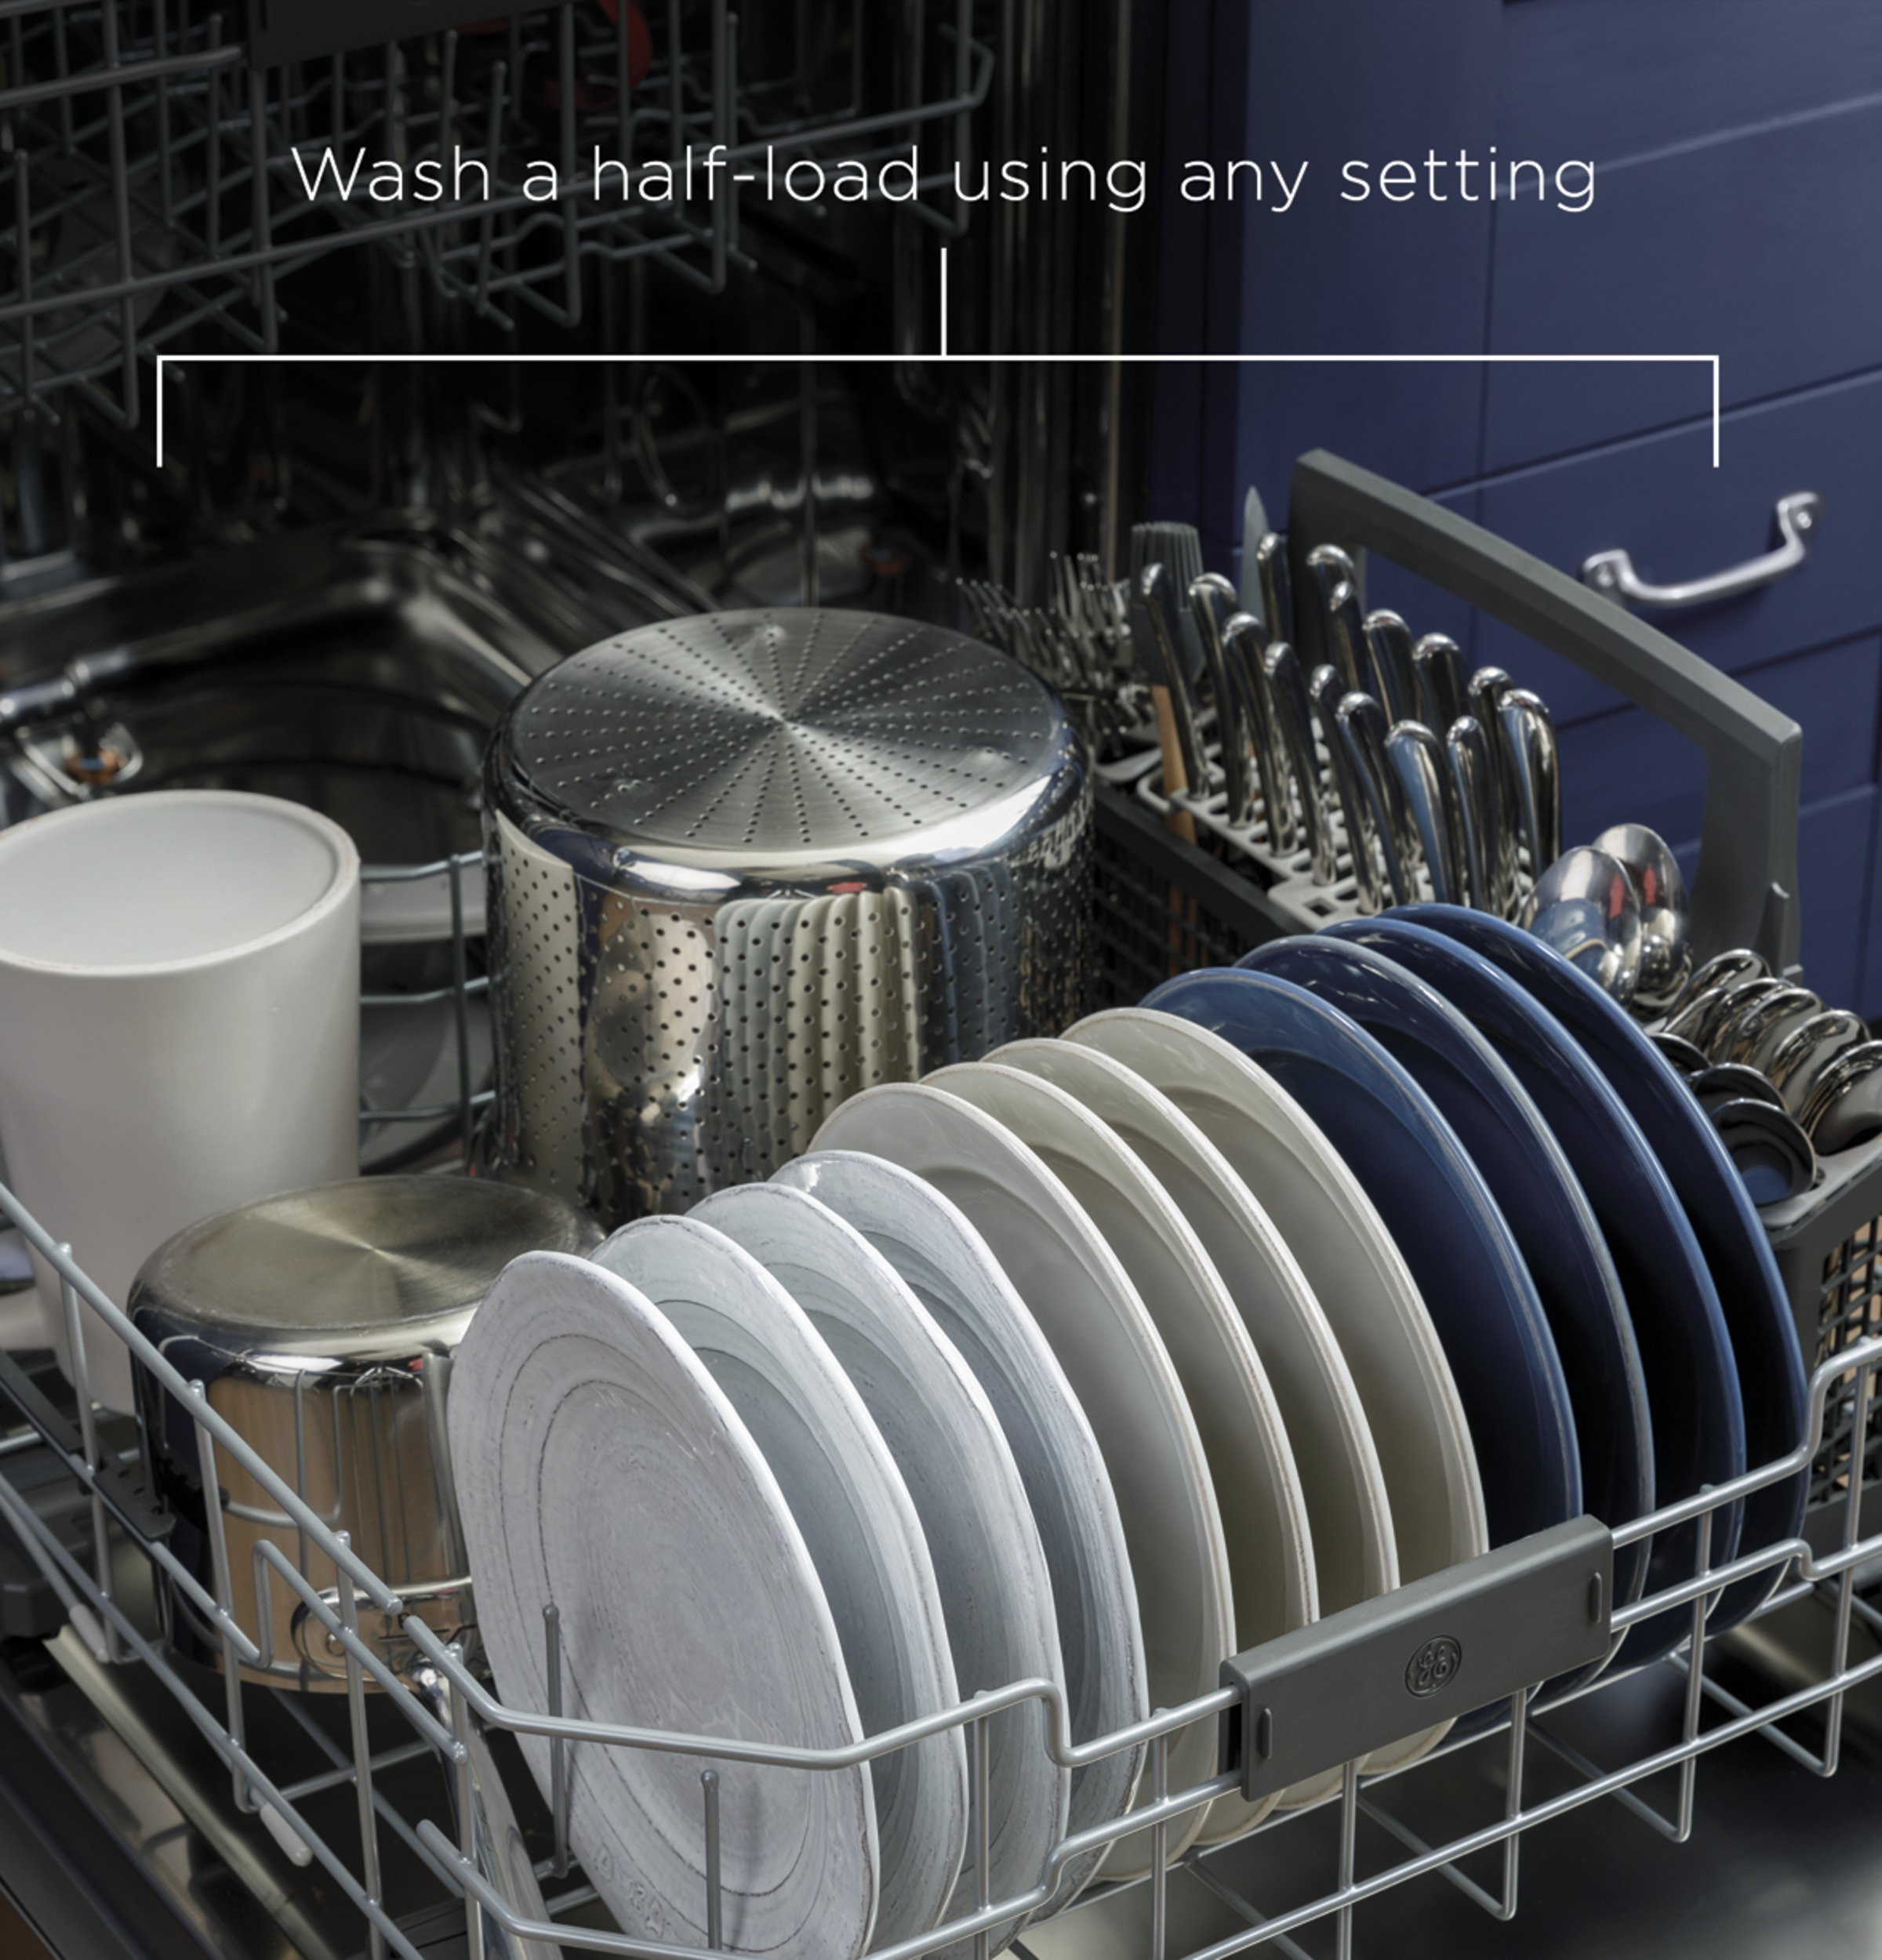 Model: GDT665SSNSS | GE GE® Stainless Steel Interior Dishwasher with Hidden Controls